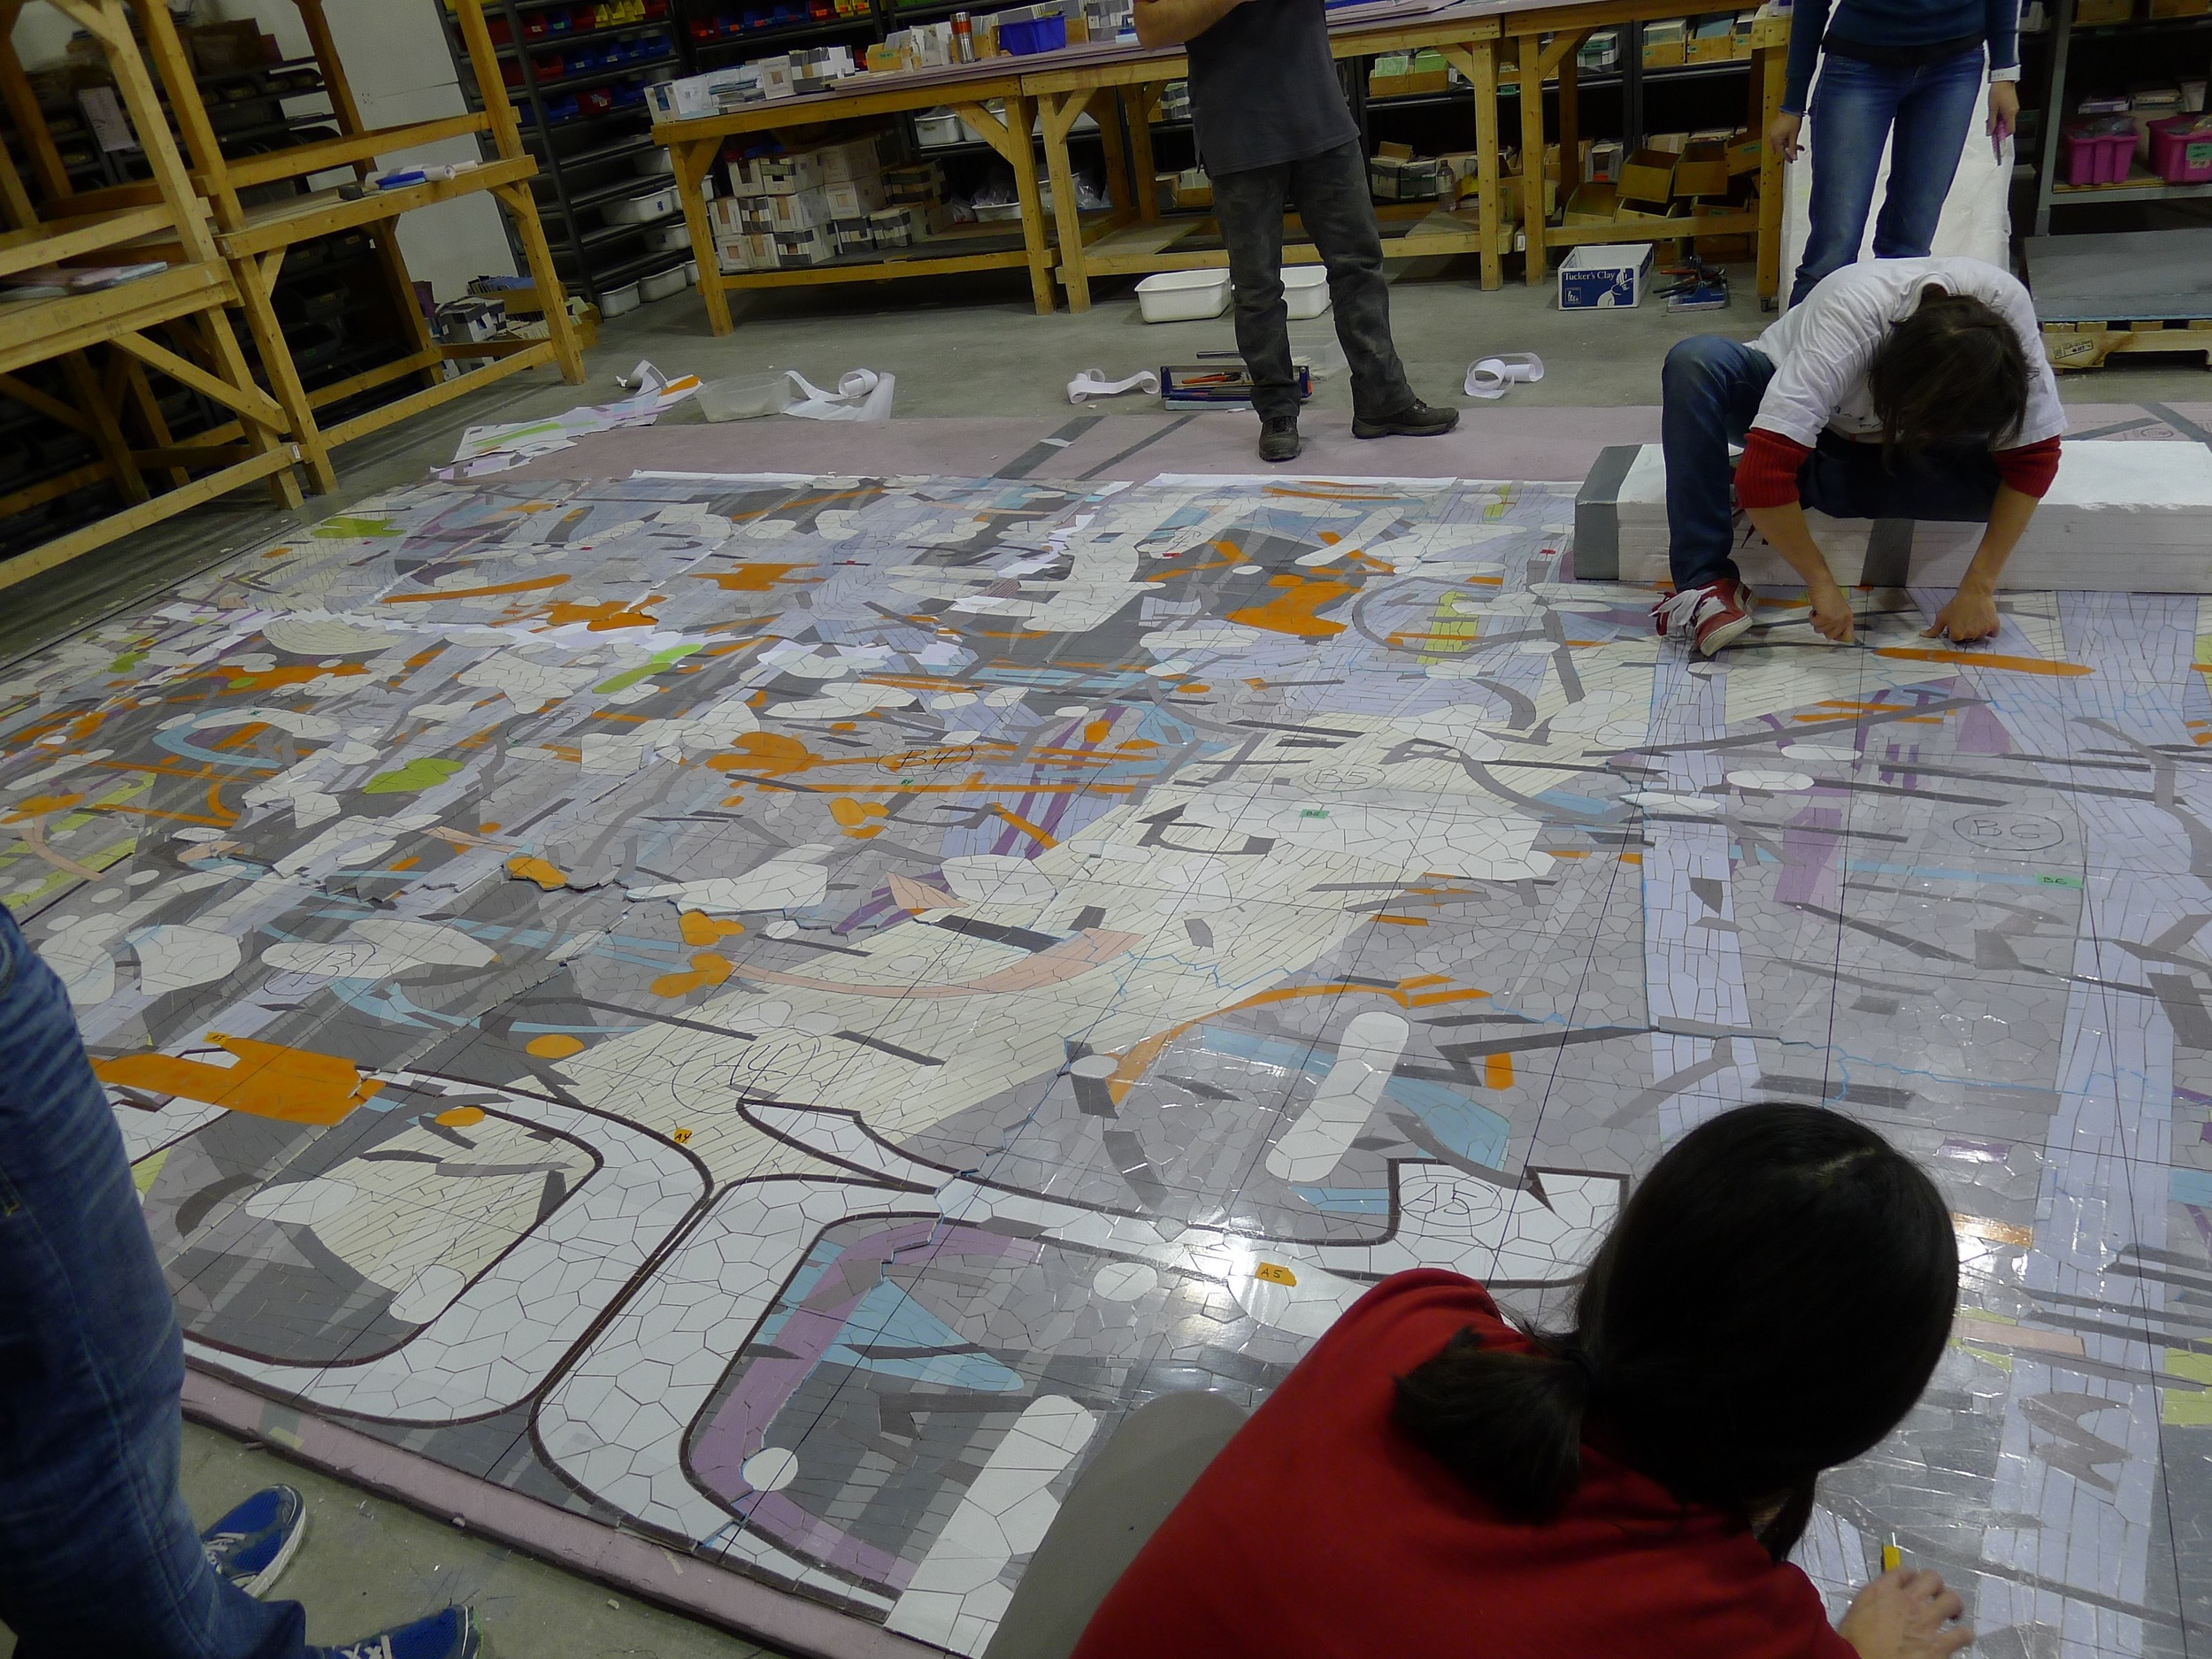 Artists sealthe mosaic between two sheets ofclear plastic and draw a grid onto the surface. It is then cut into smaller sections for crating and shipping.